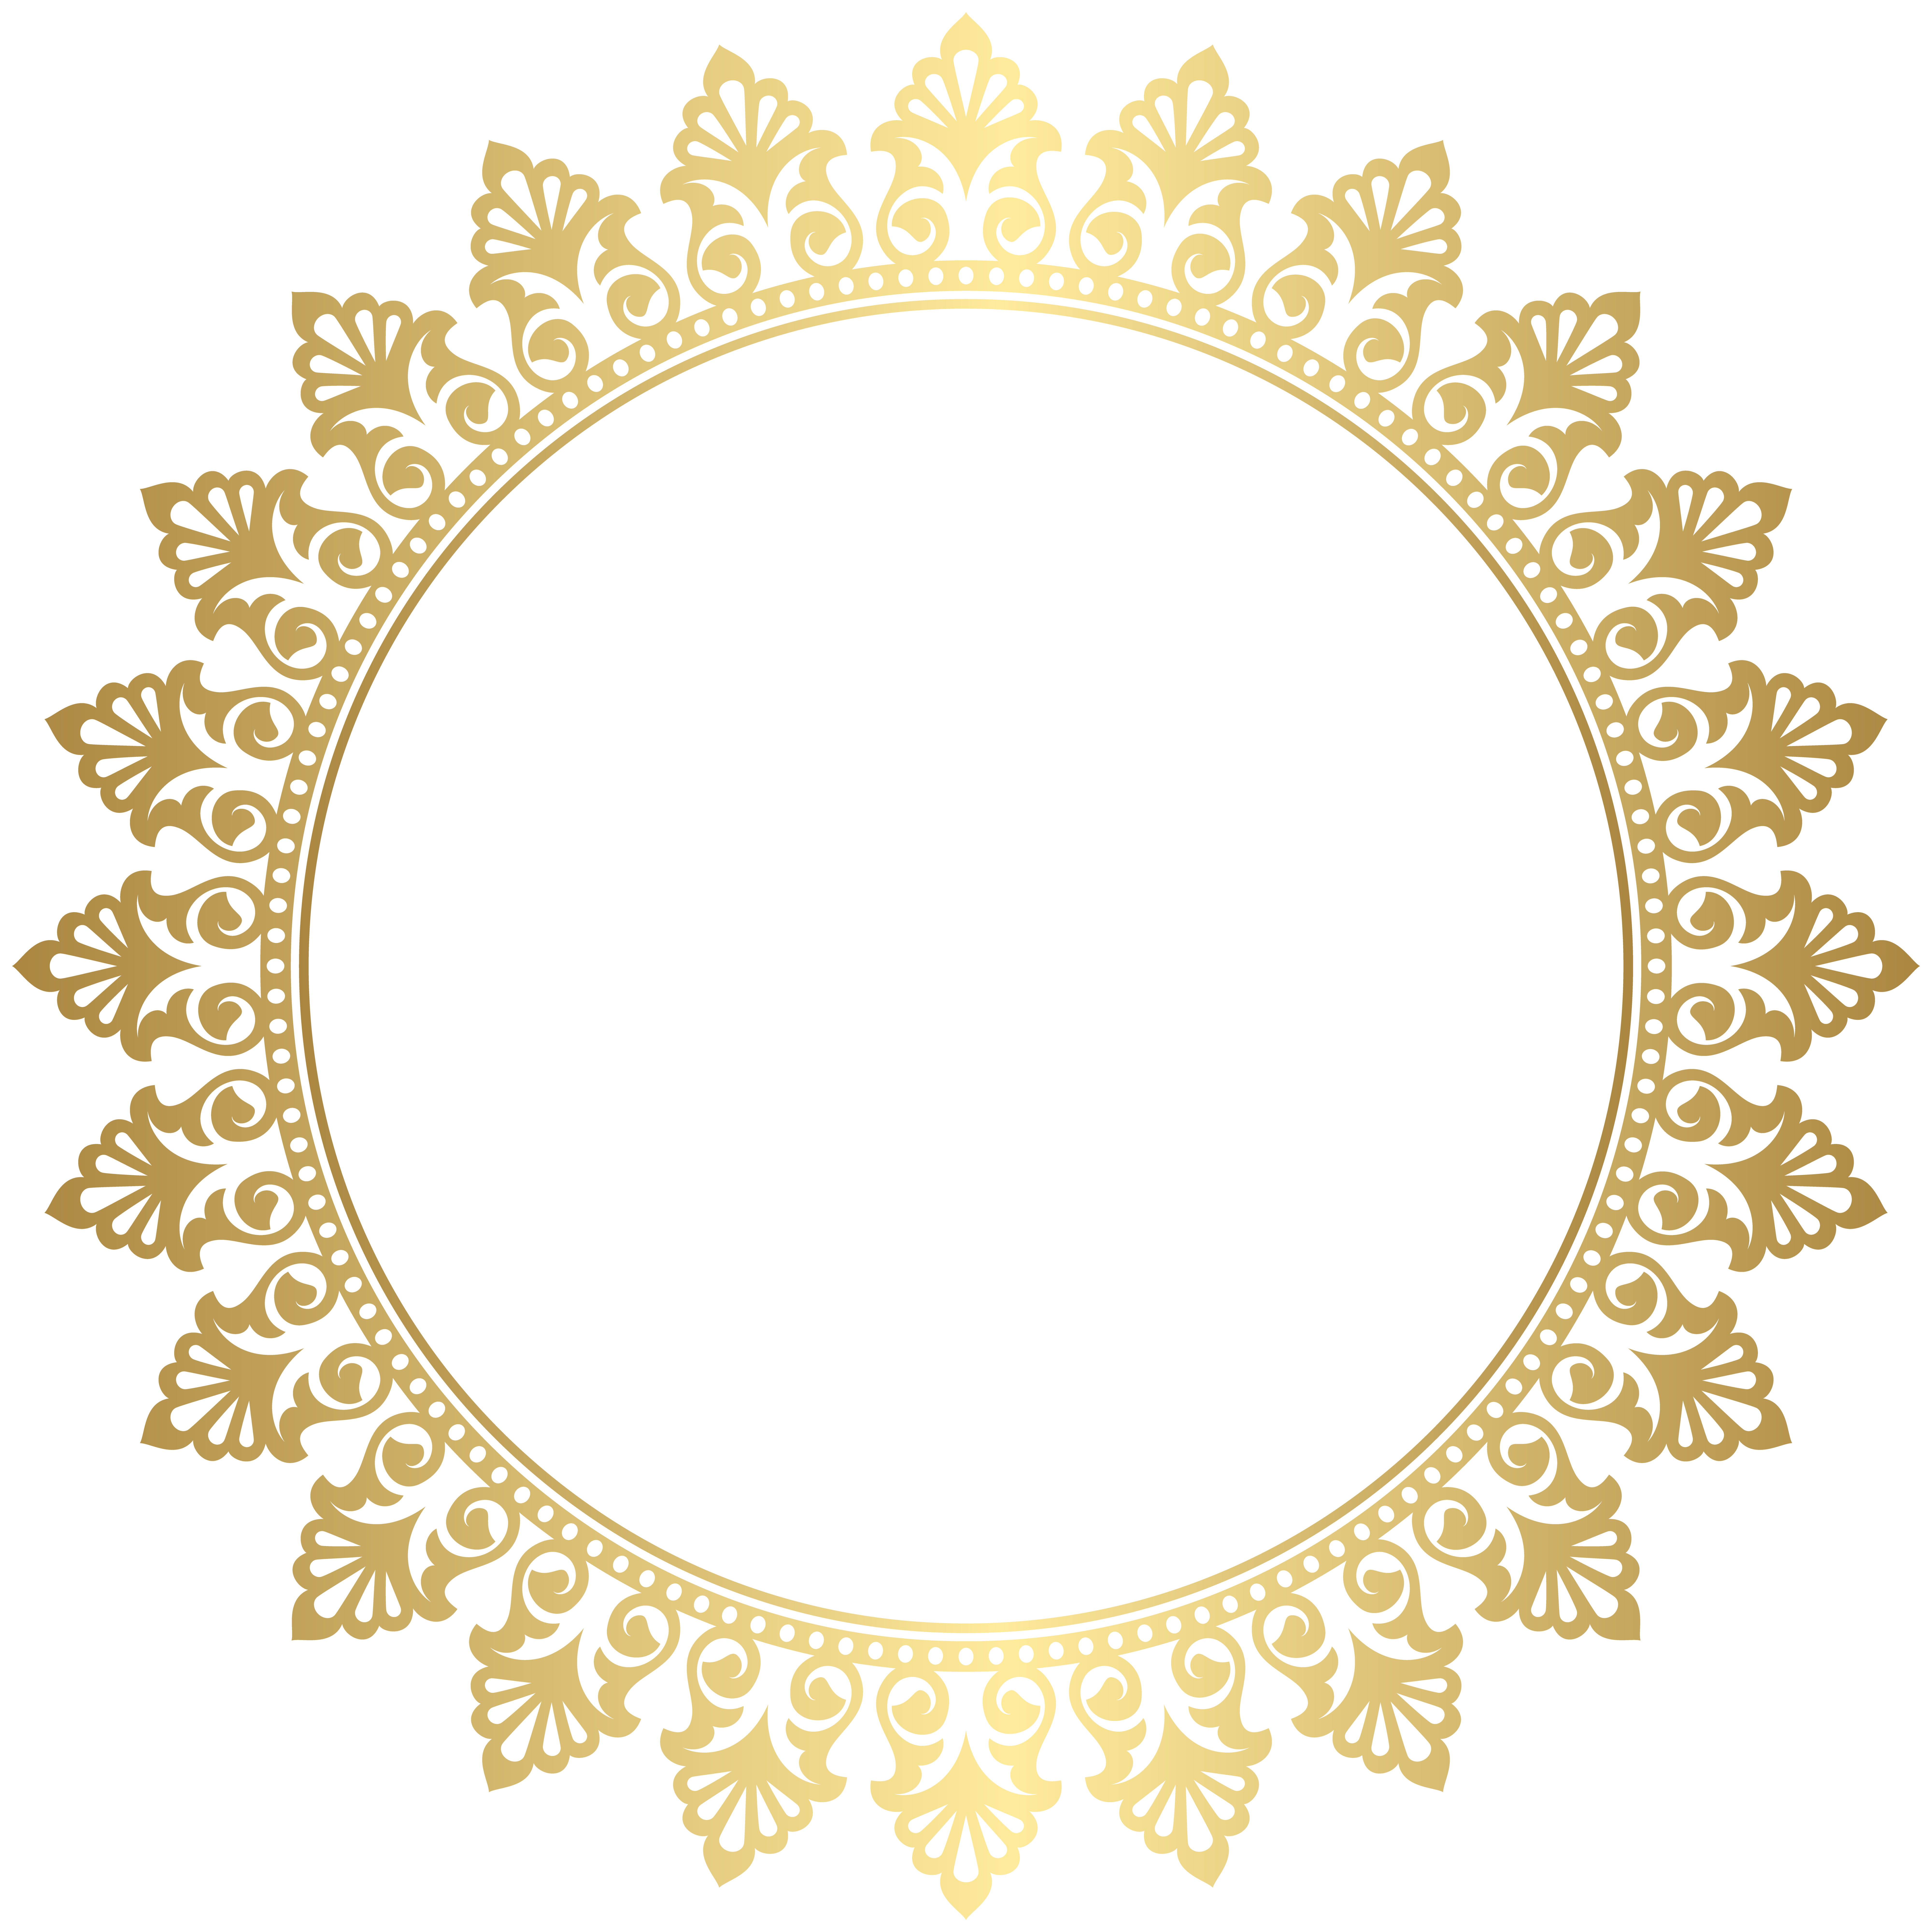 Circle design clipart jpg royalty free library Pin by galit cohen on כרטיסים | Frame clipart, Round border ... jpg royalty free library